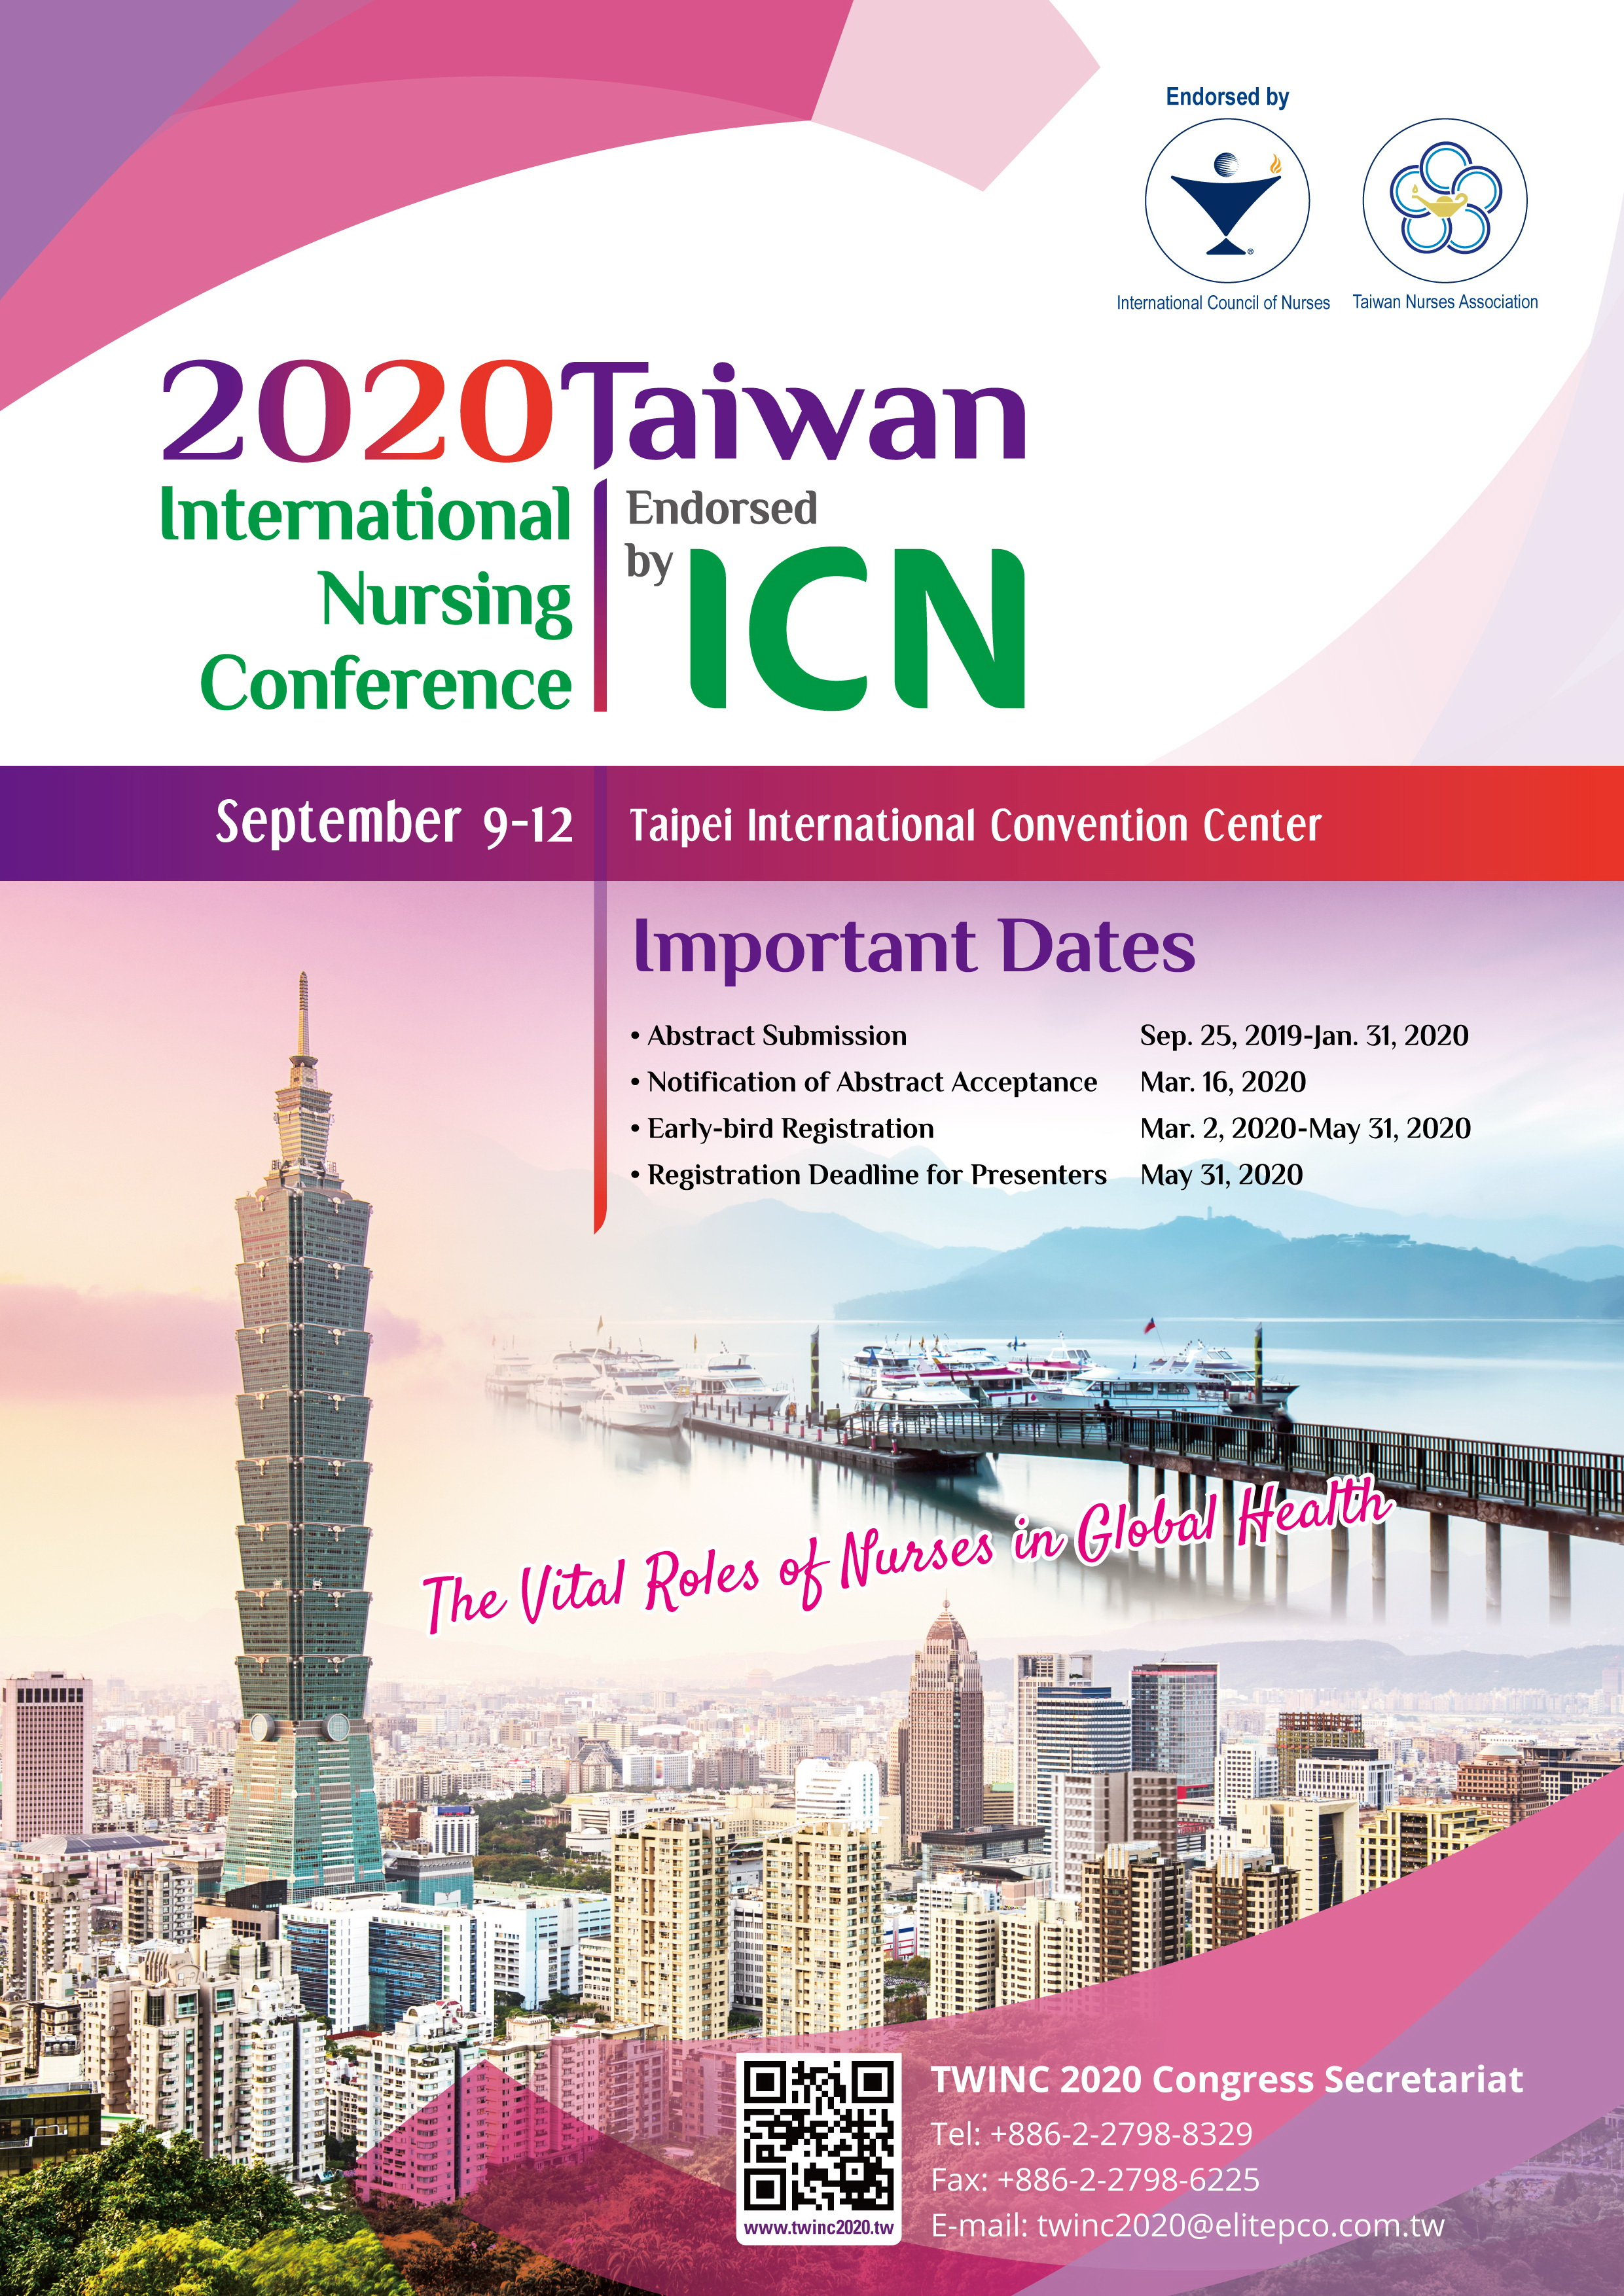 Taiwan conference timings